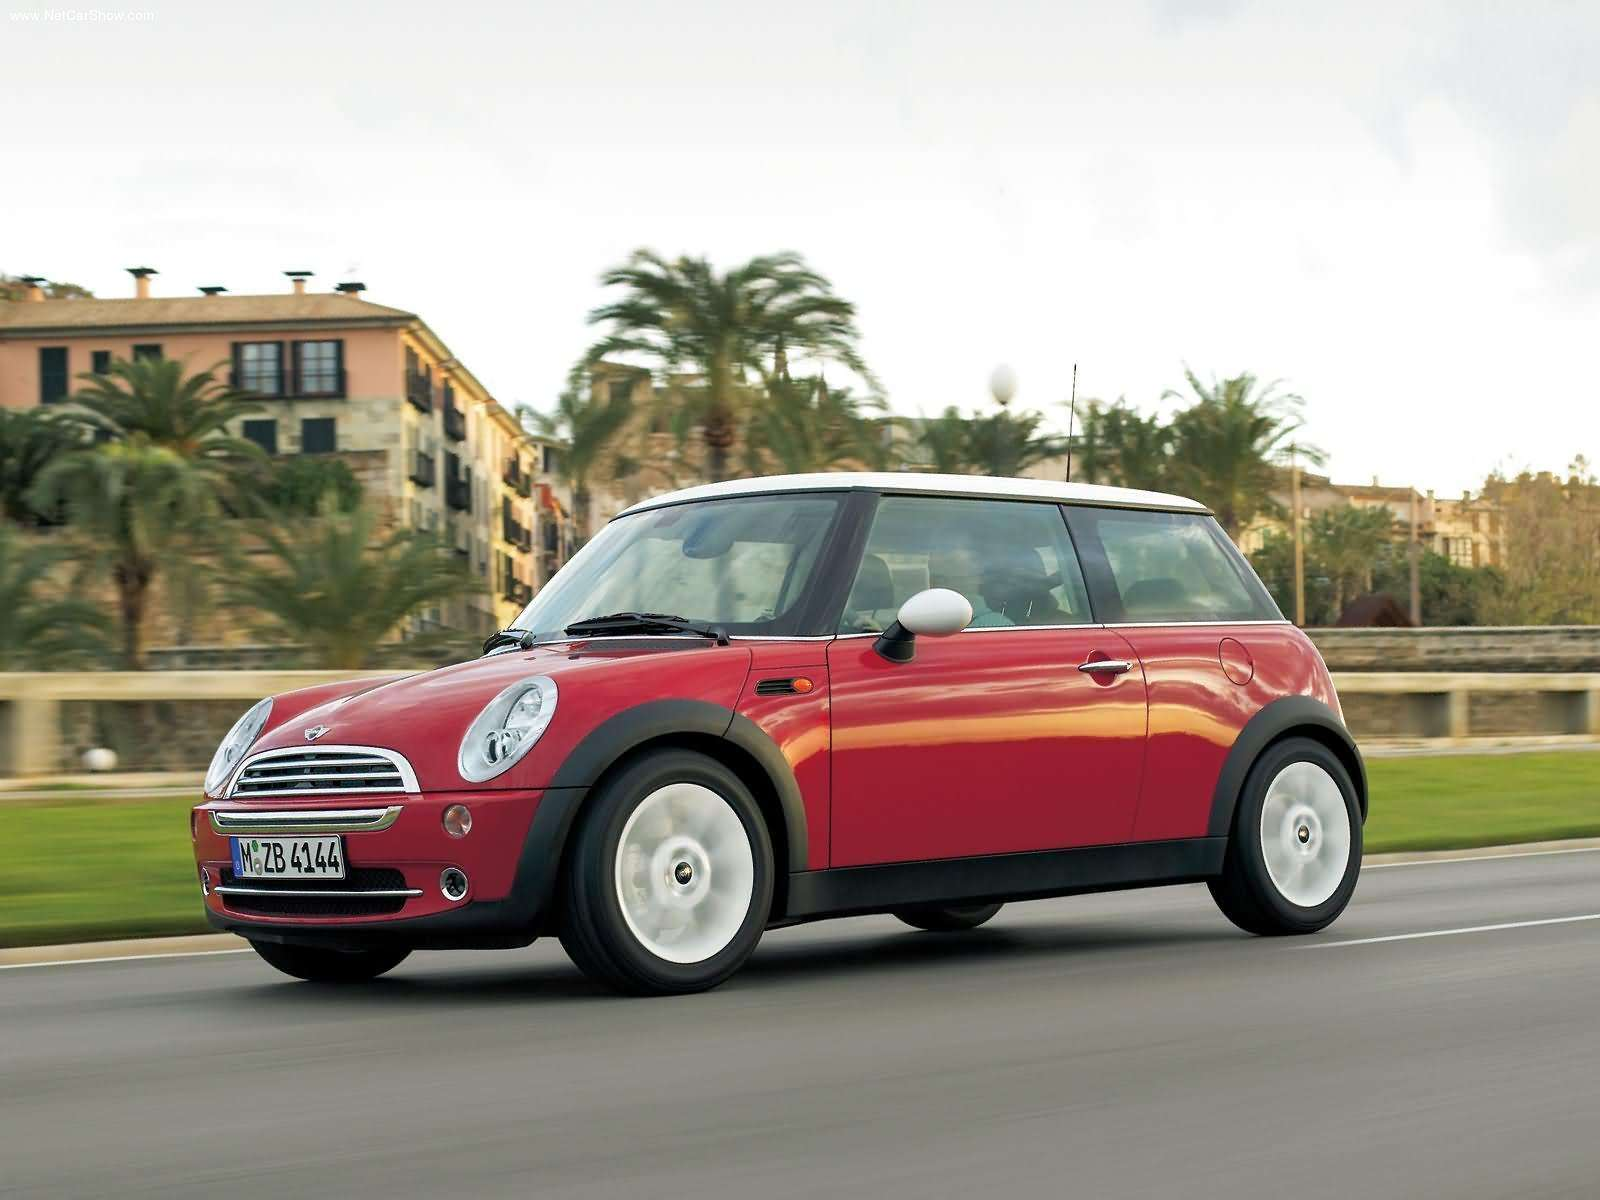 The Recalls Continue For Mini 86 018 Cars Recalled For